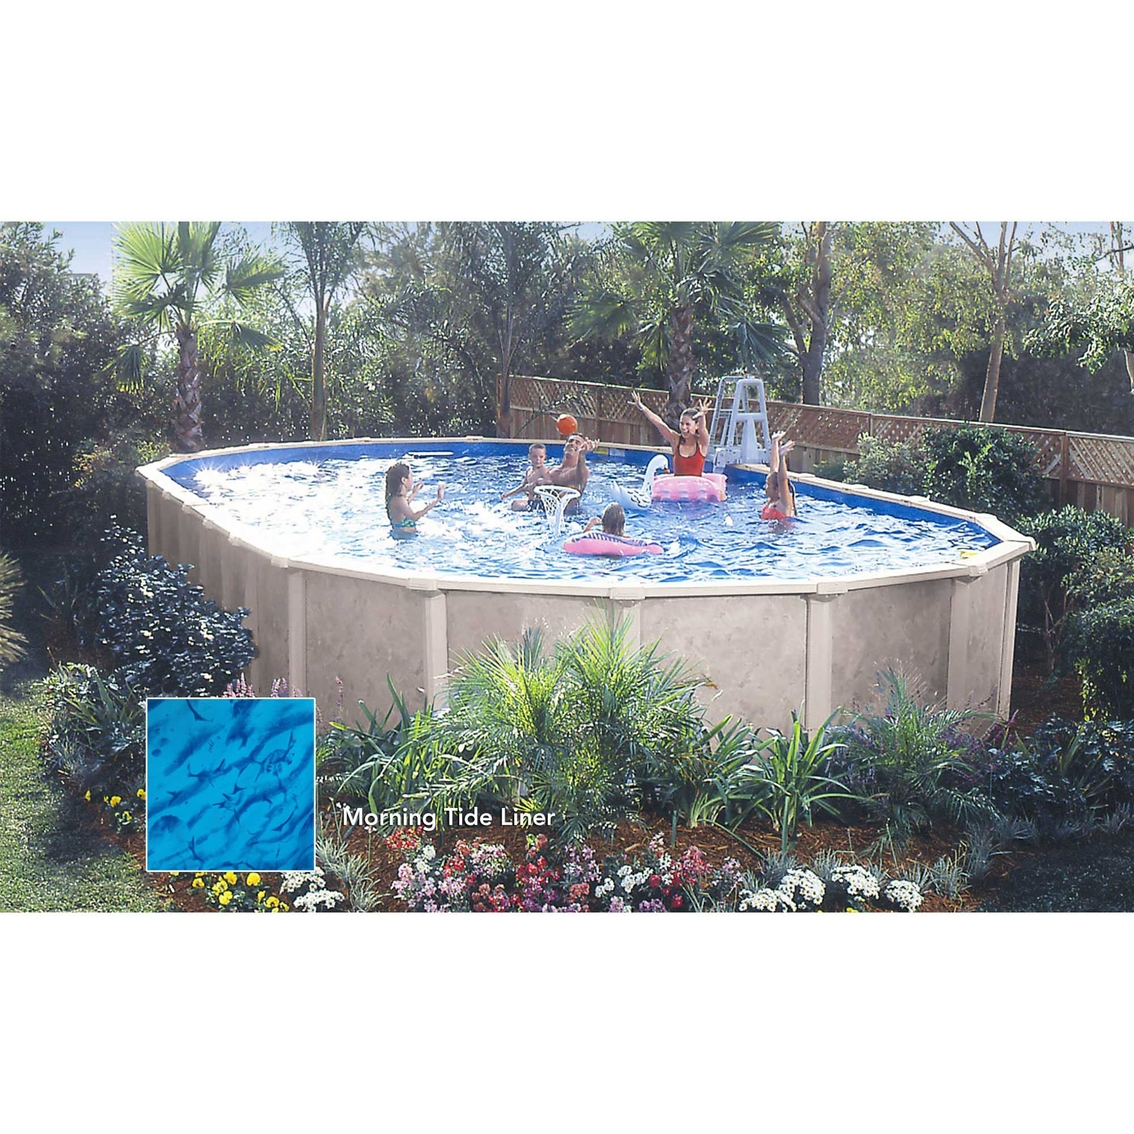 Lomart sandstone oval above ground pool package pools for Sport pools pictures